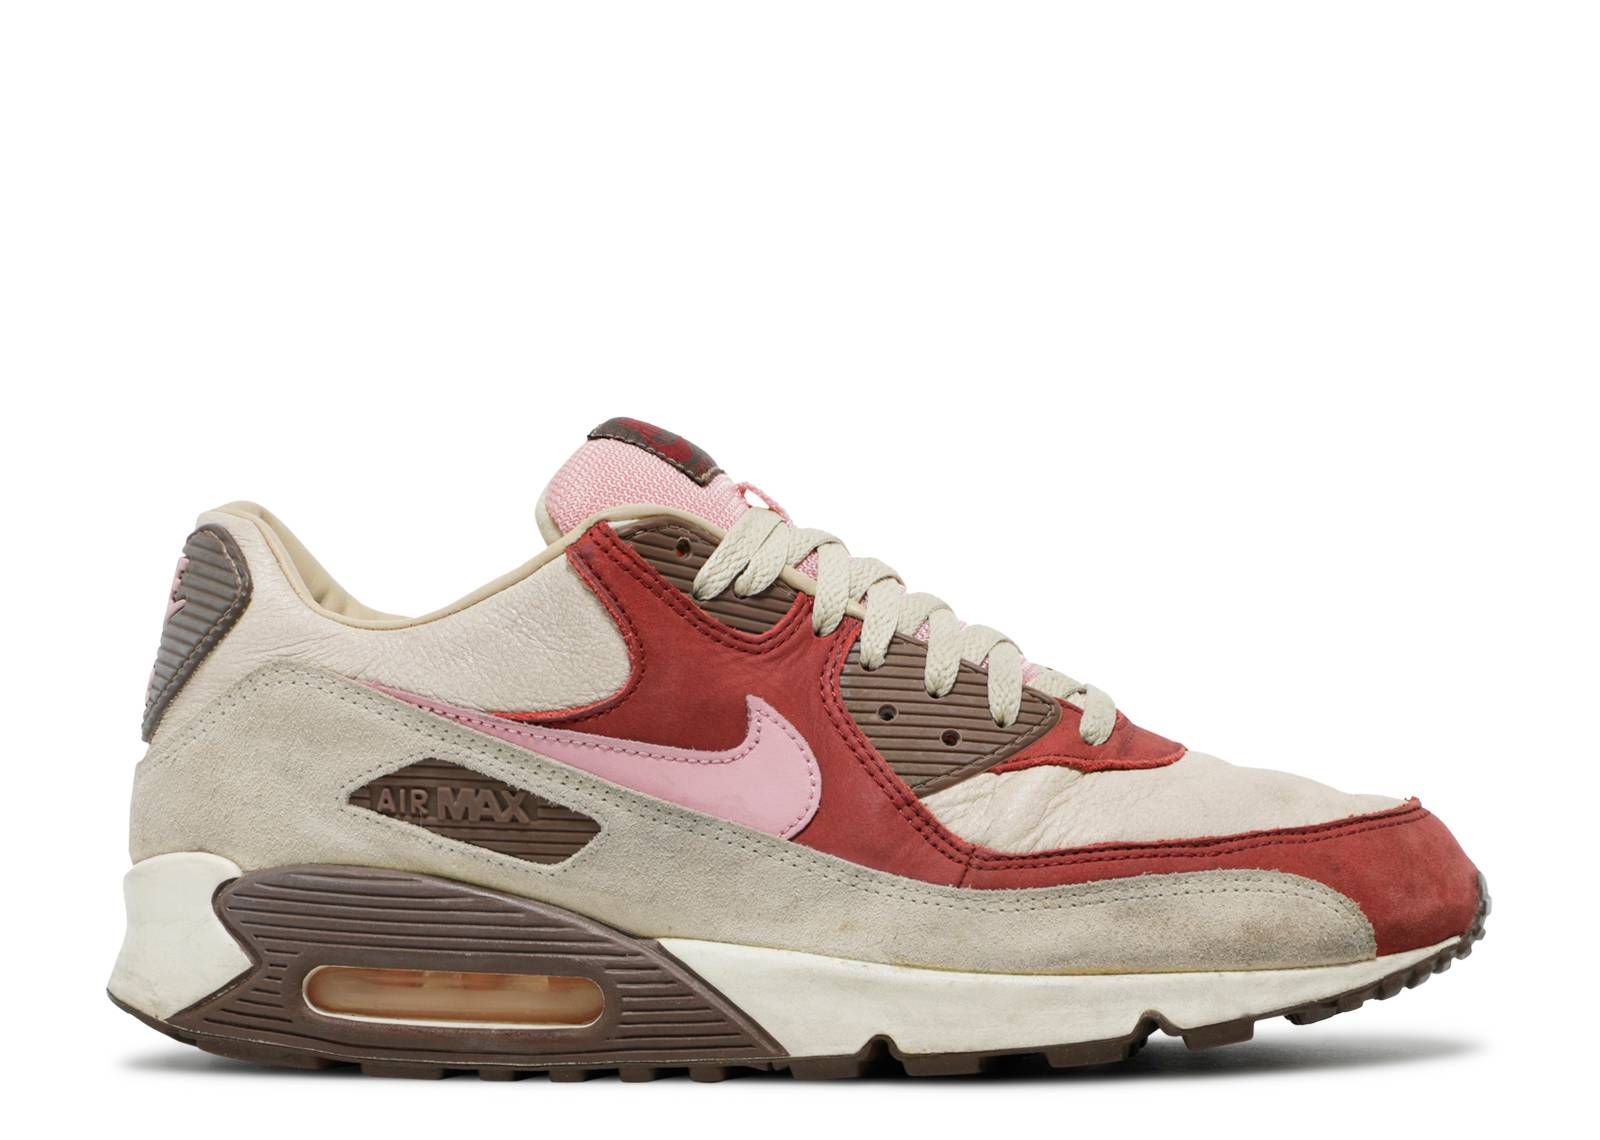 air max 90 dqm bacon nike 310766 161 sail sheen straw medium brown flight club. Black Bedroom Furniture Sets. Home Design Ideas